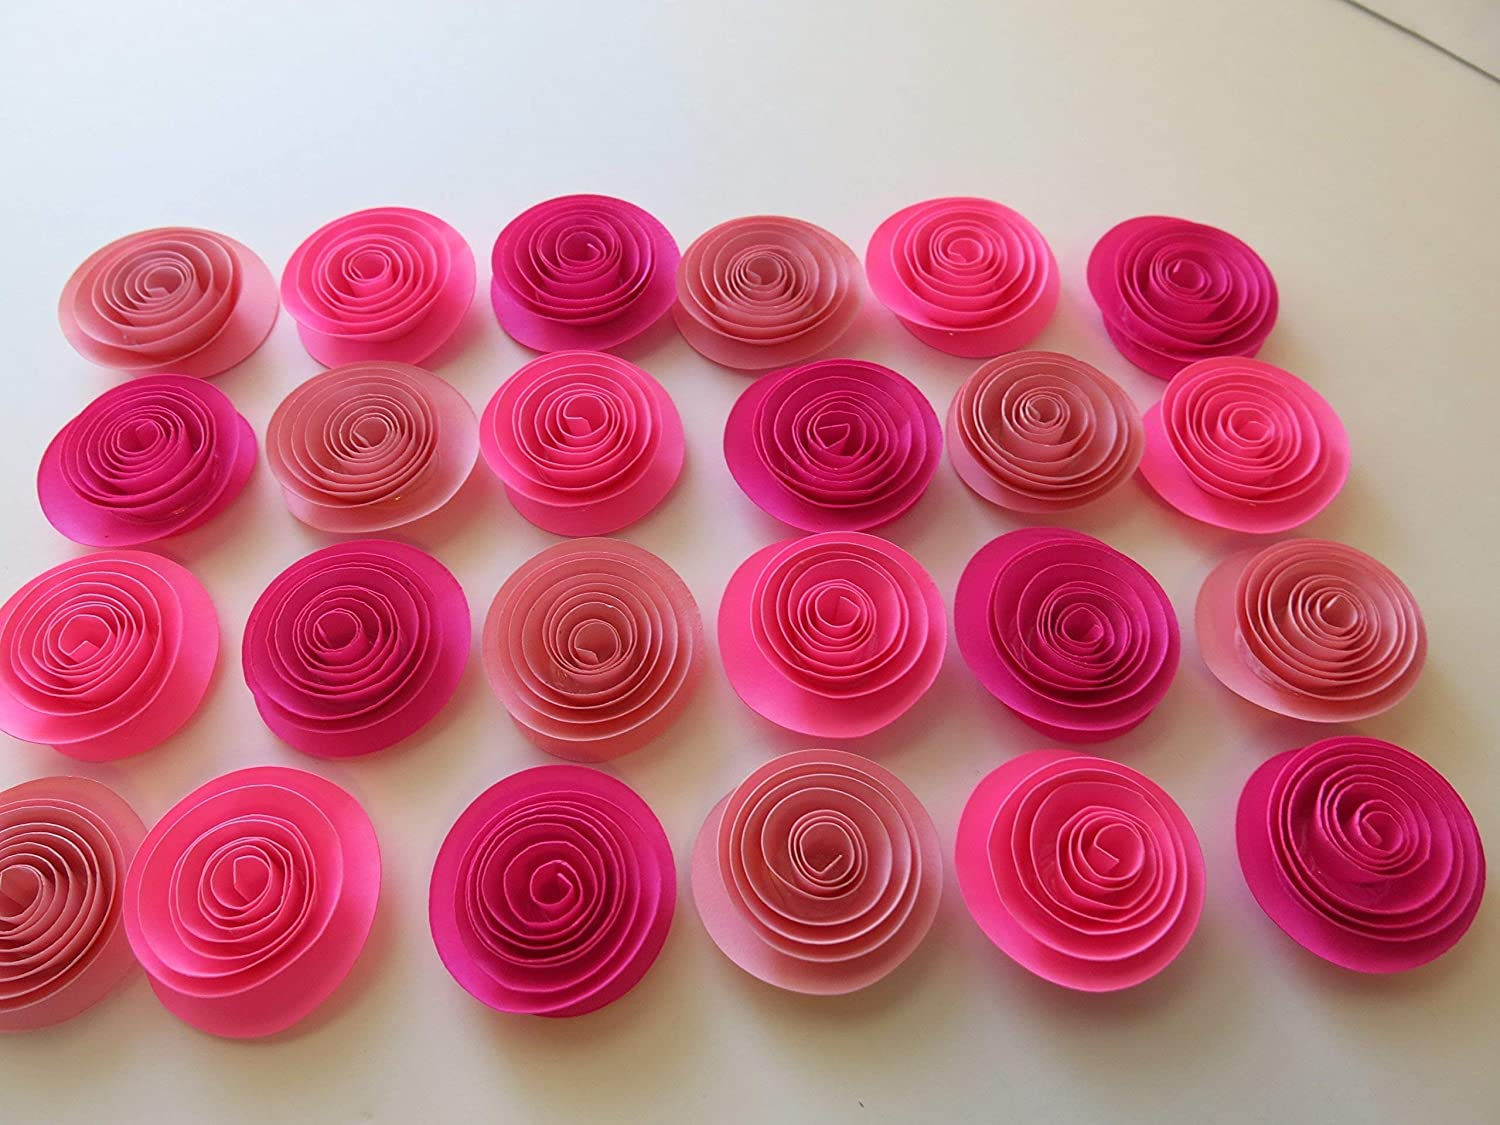 Shades Of Pink Baby Shower Decorations Set 24 Small Roses 15 Paper Flowers Girl Birthday Party Princess Theme Tea Bedroom Decor